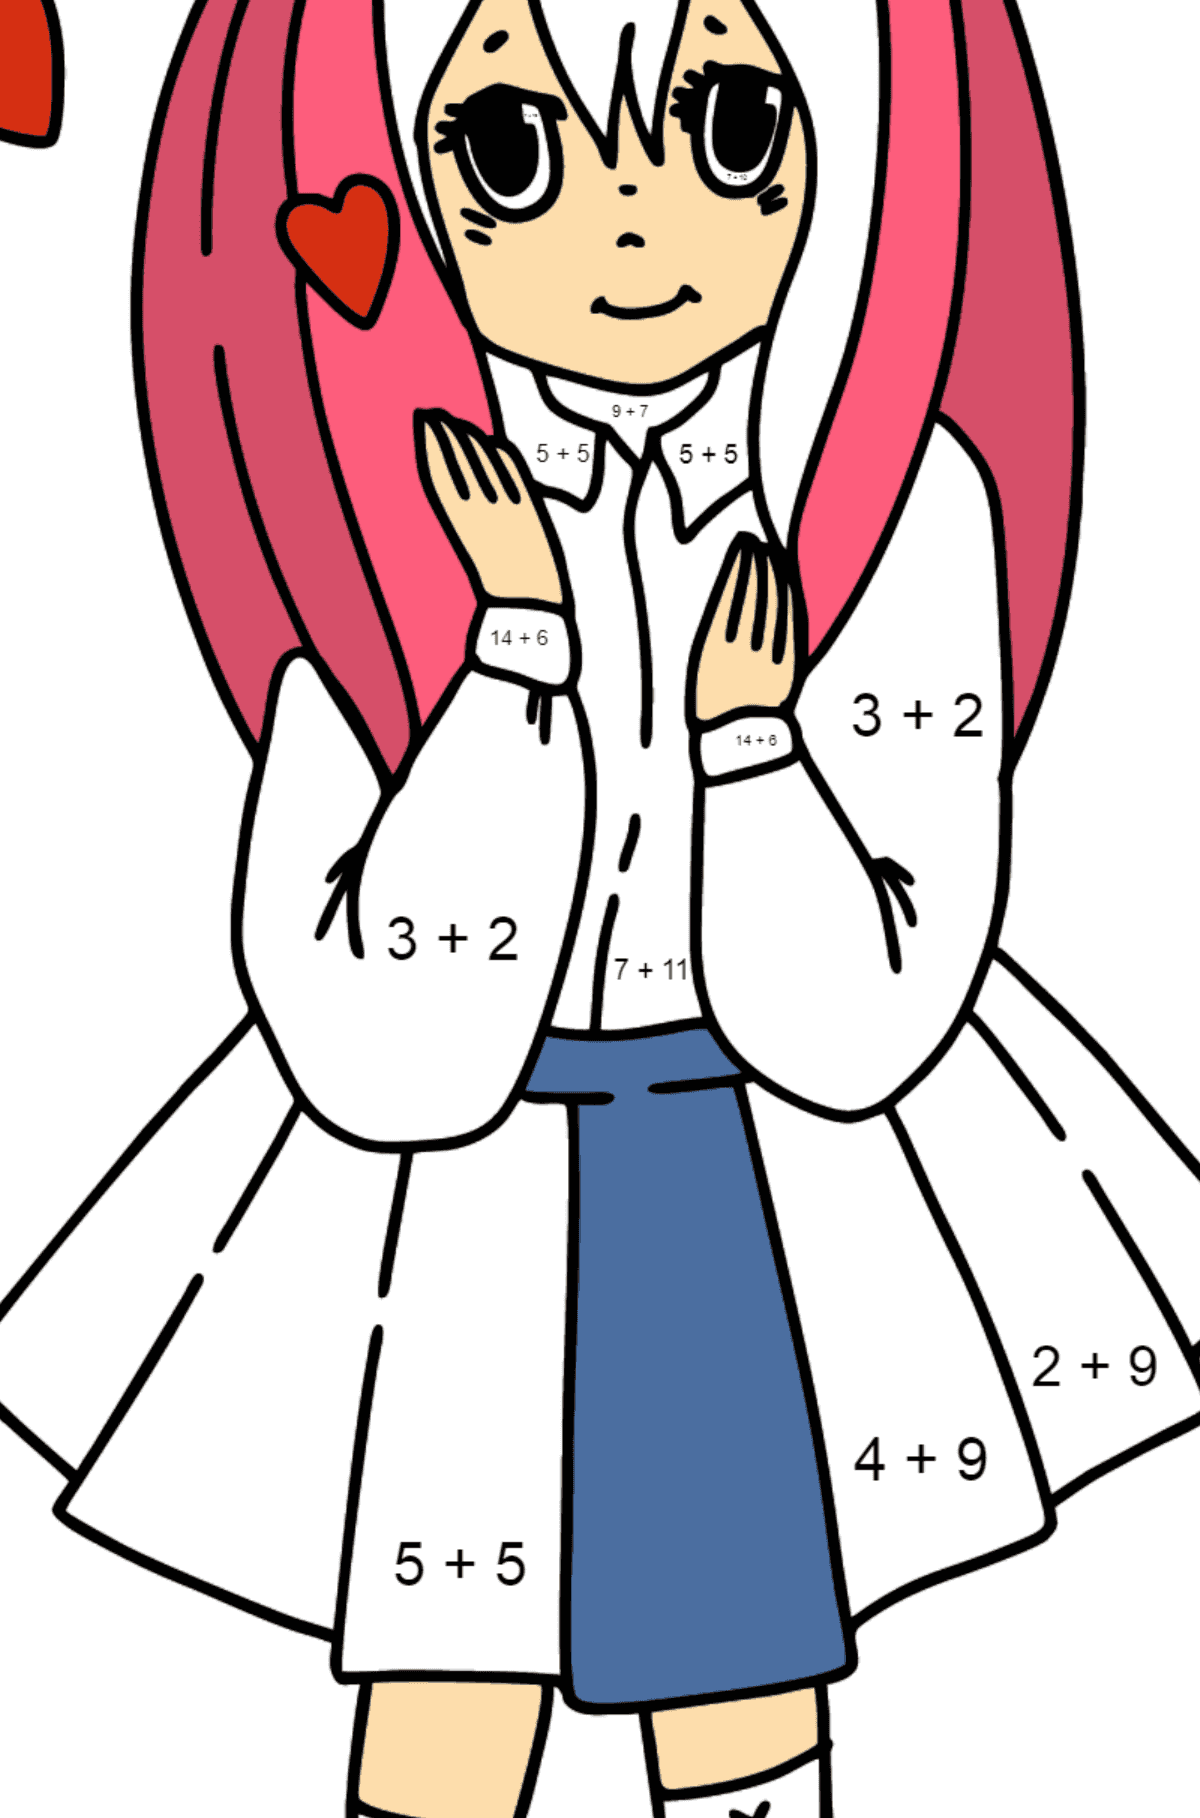 Anime girl in love coloring page - Math Coloring - Addition for Kids